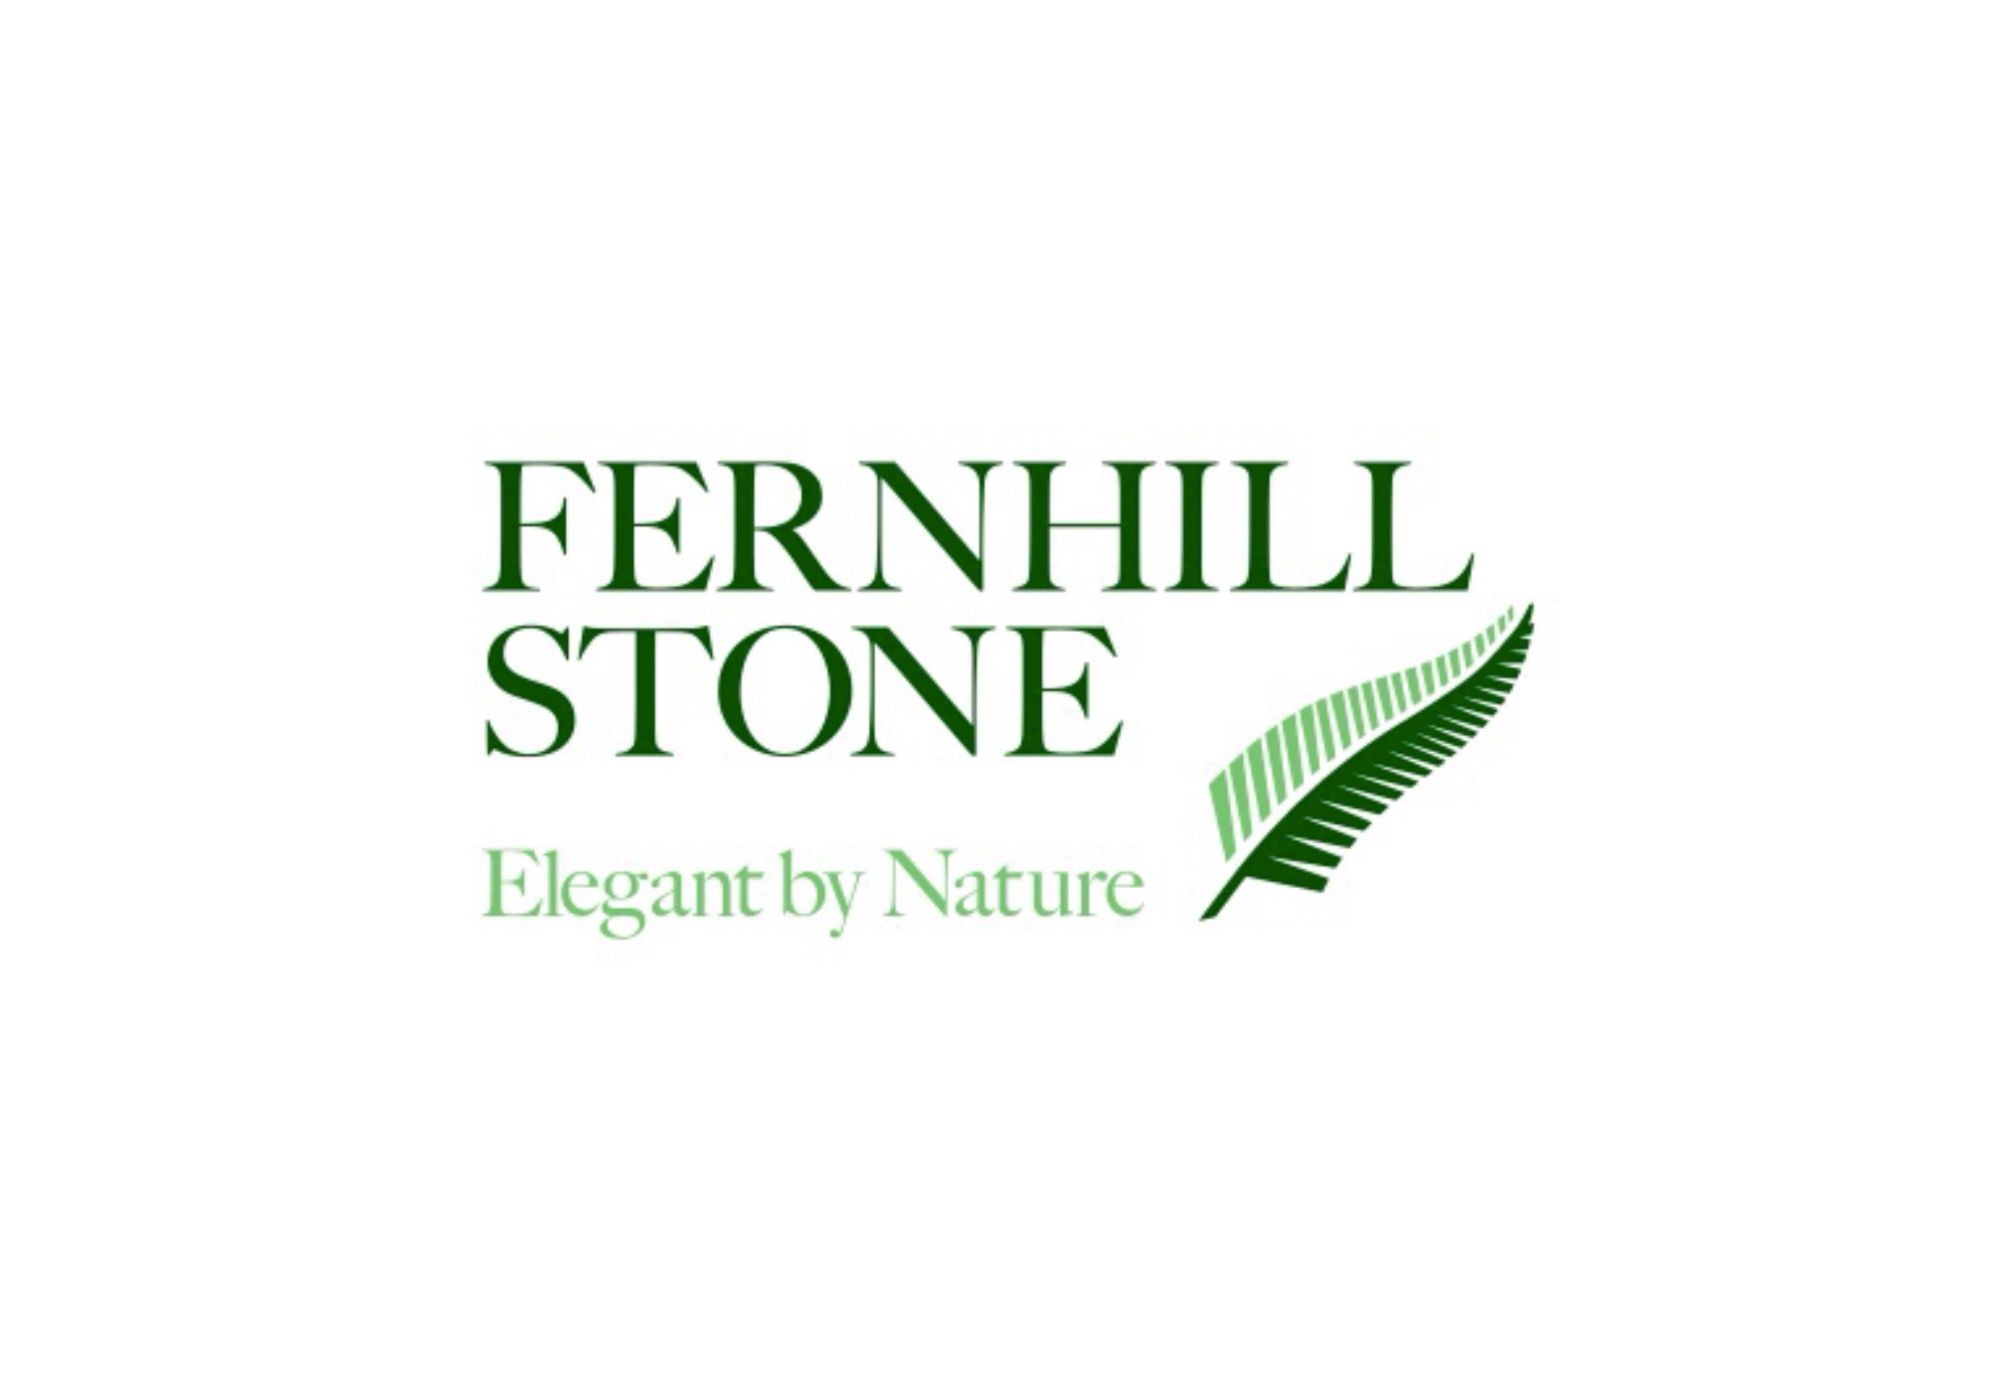 Fernhill Stone Limited